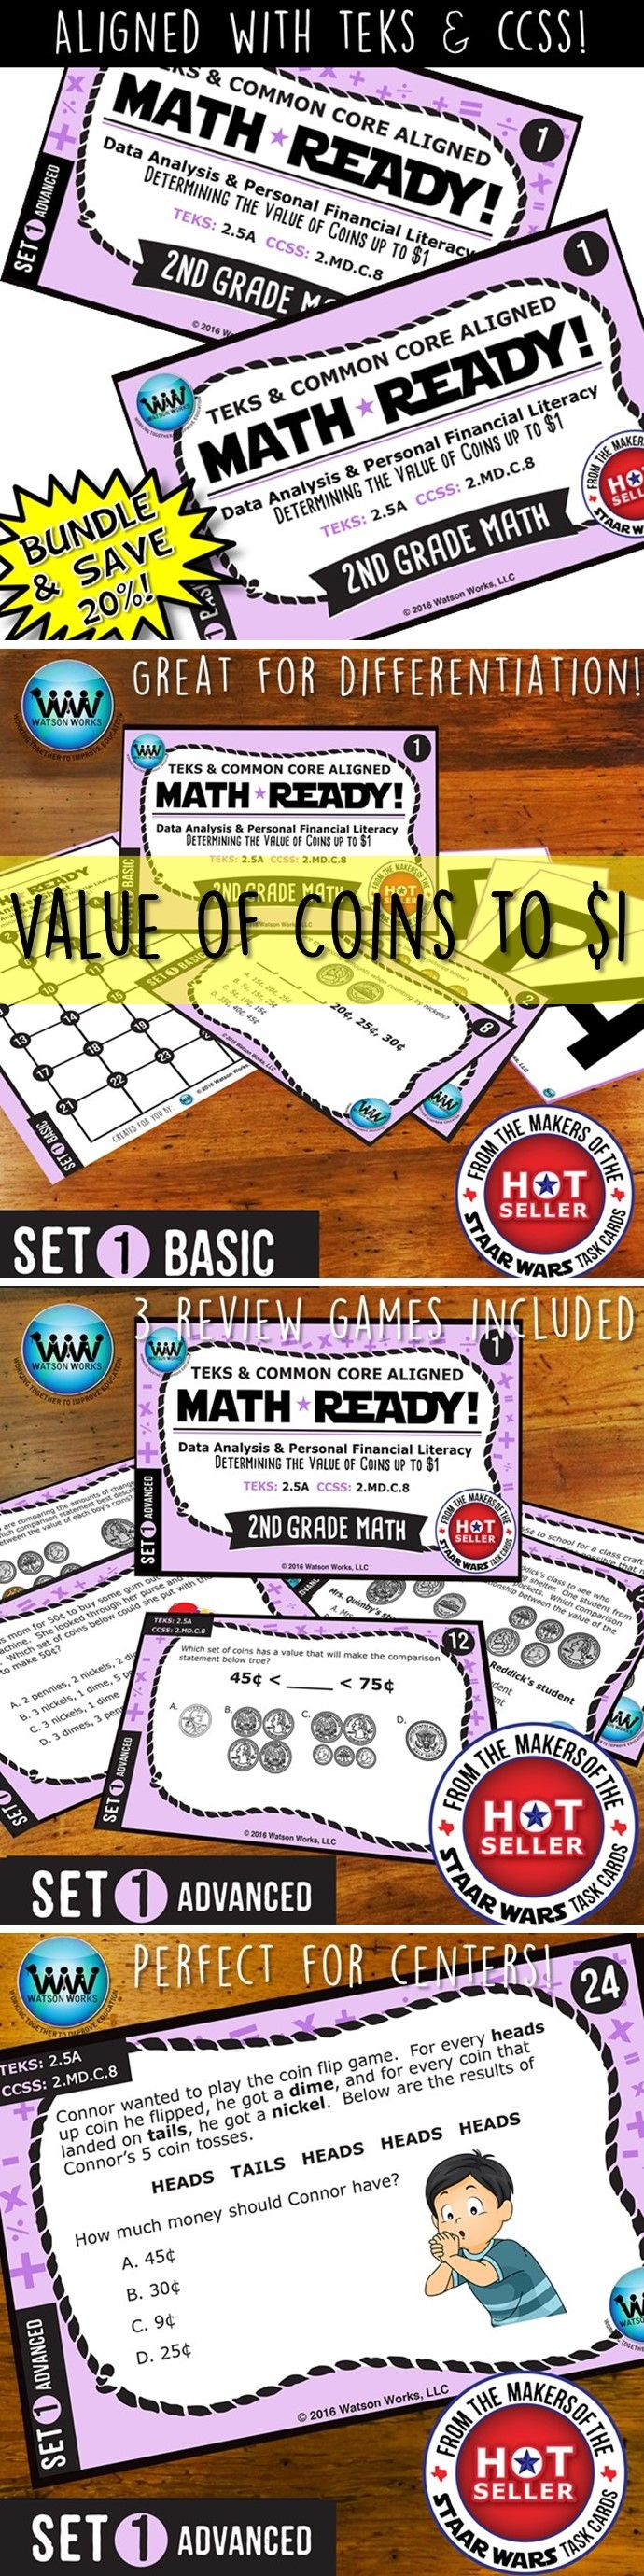 SAVE 20% WHEN YOU PURCHASE THIS BUNDLE (includes both our Basic & Advanced MATH READY Determining the Value of Coins up to $1 Task Cards sets)! Both sets include 24 task cards w/ multiple choice answers. The BASIC set helps your students practice & apply their understanding of counting coins at a simpler, basic level with shorter questions, while the ADVANCED set features more rigorous, higher-level thinking questions w/ longer word problems, making them great for differentiation. $4.78